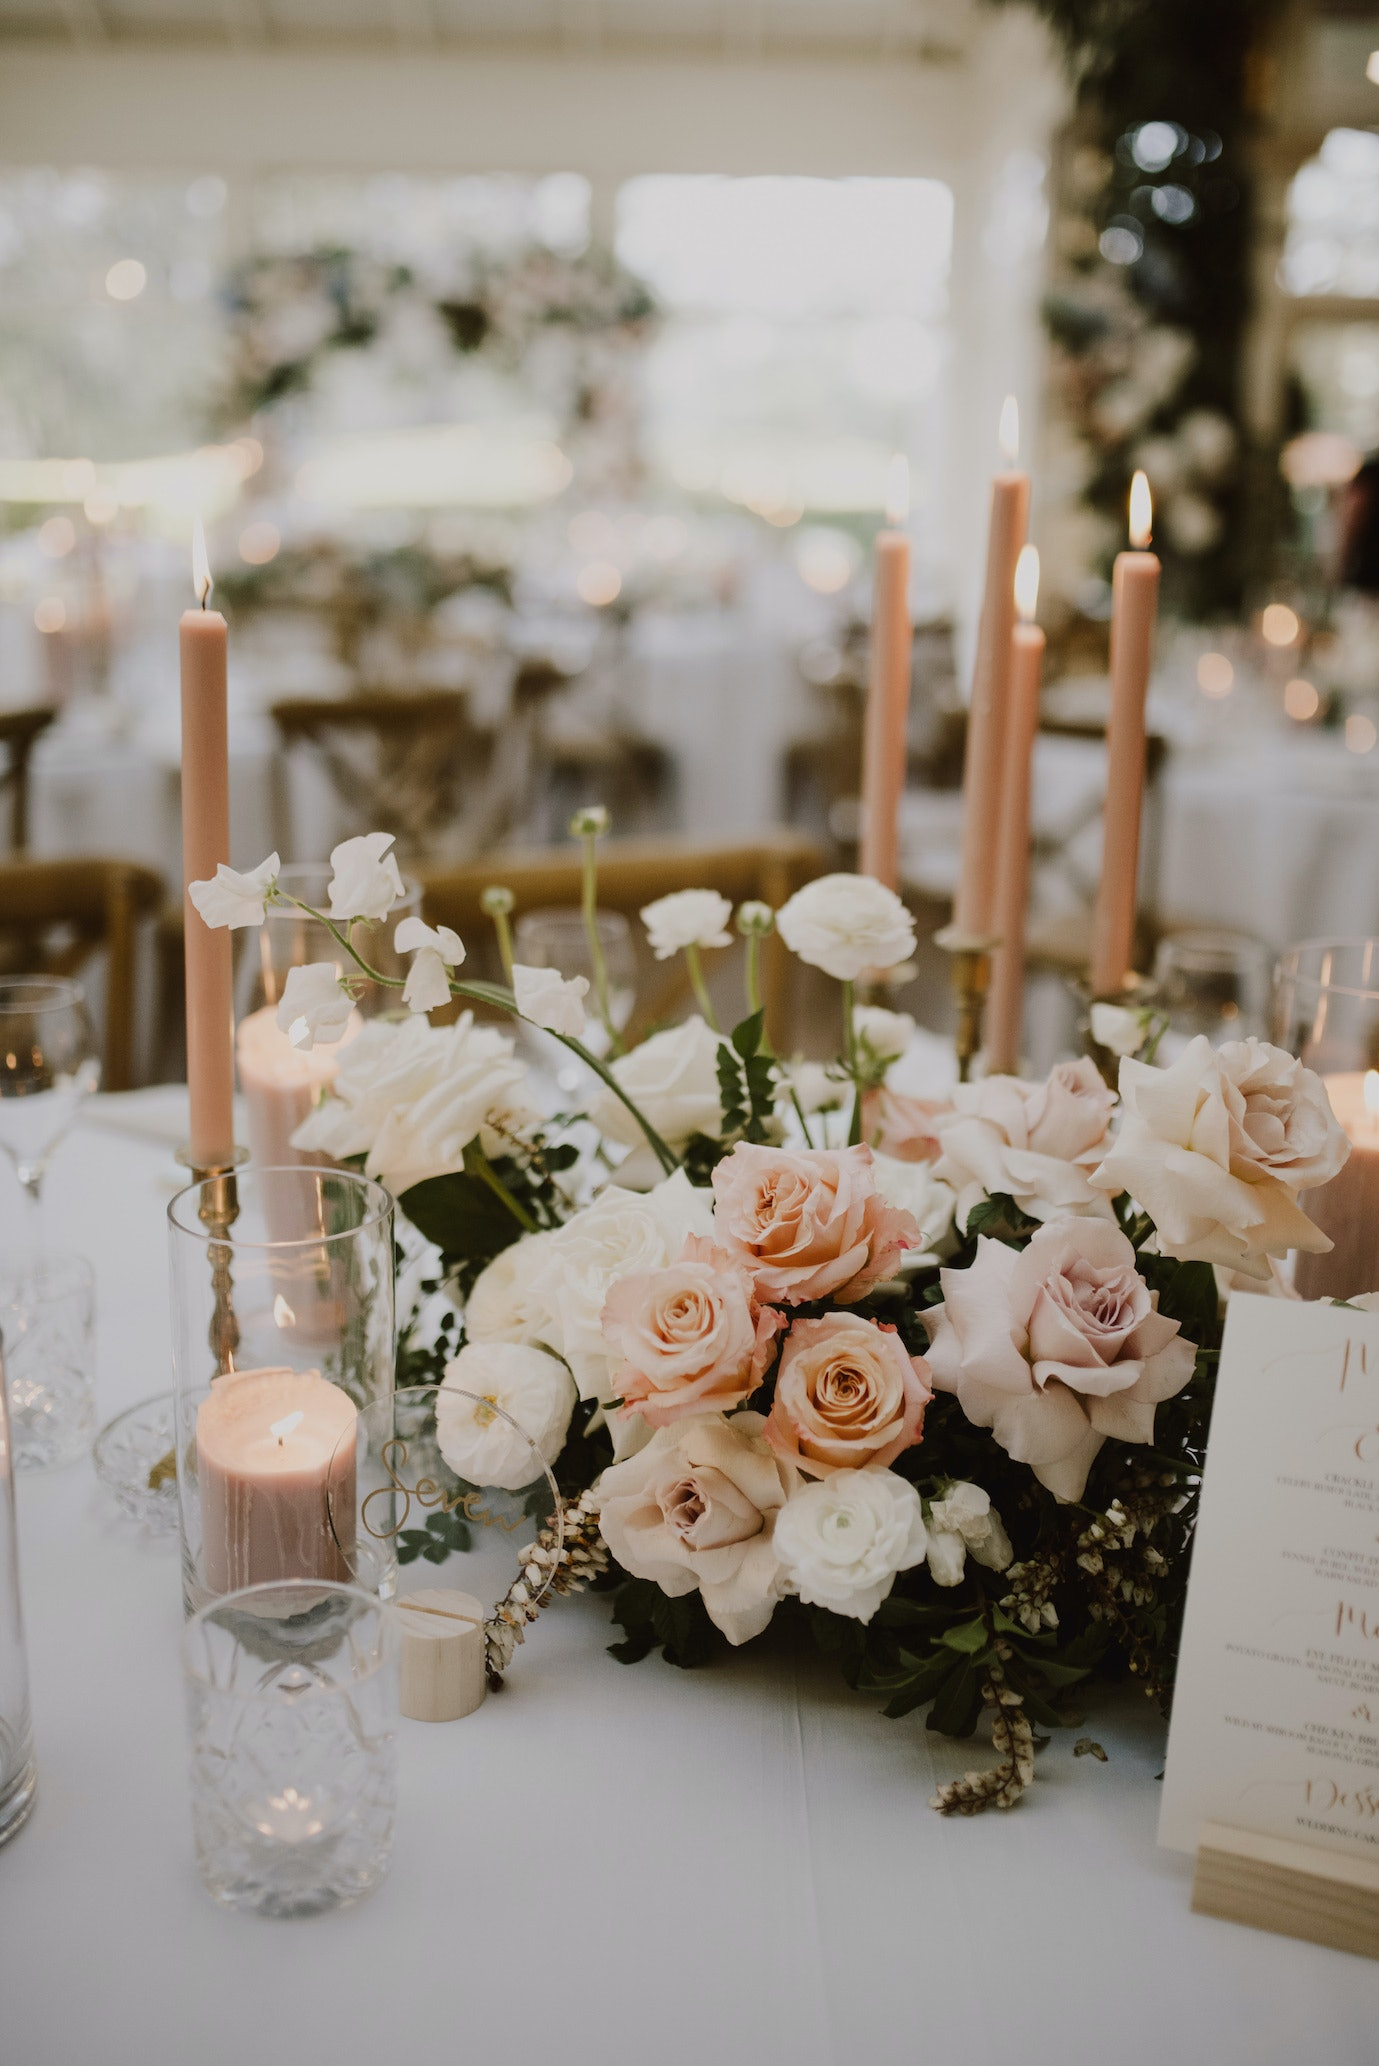 Wedding floral centrepiece with pink candles